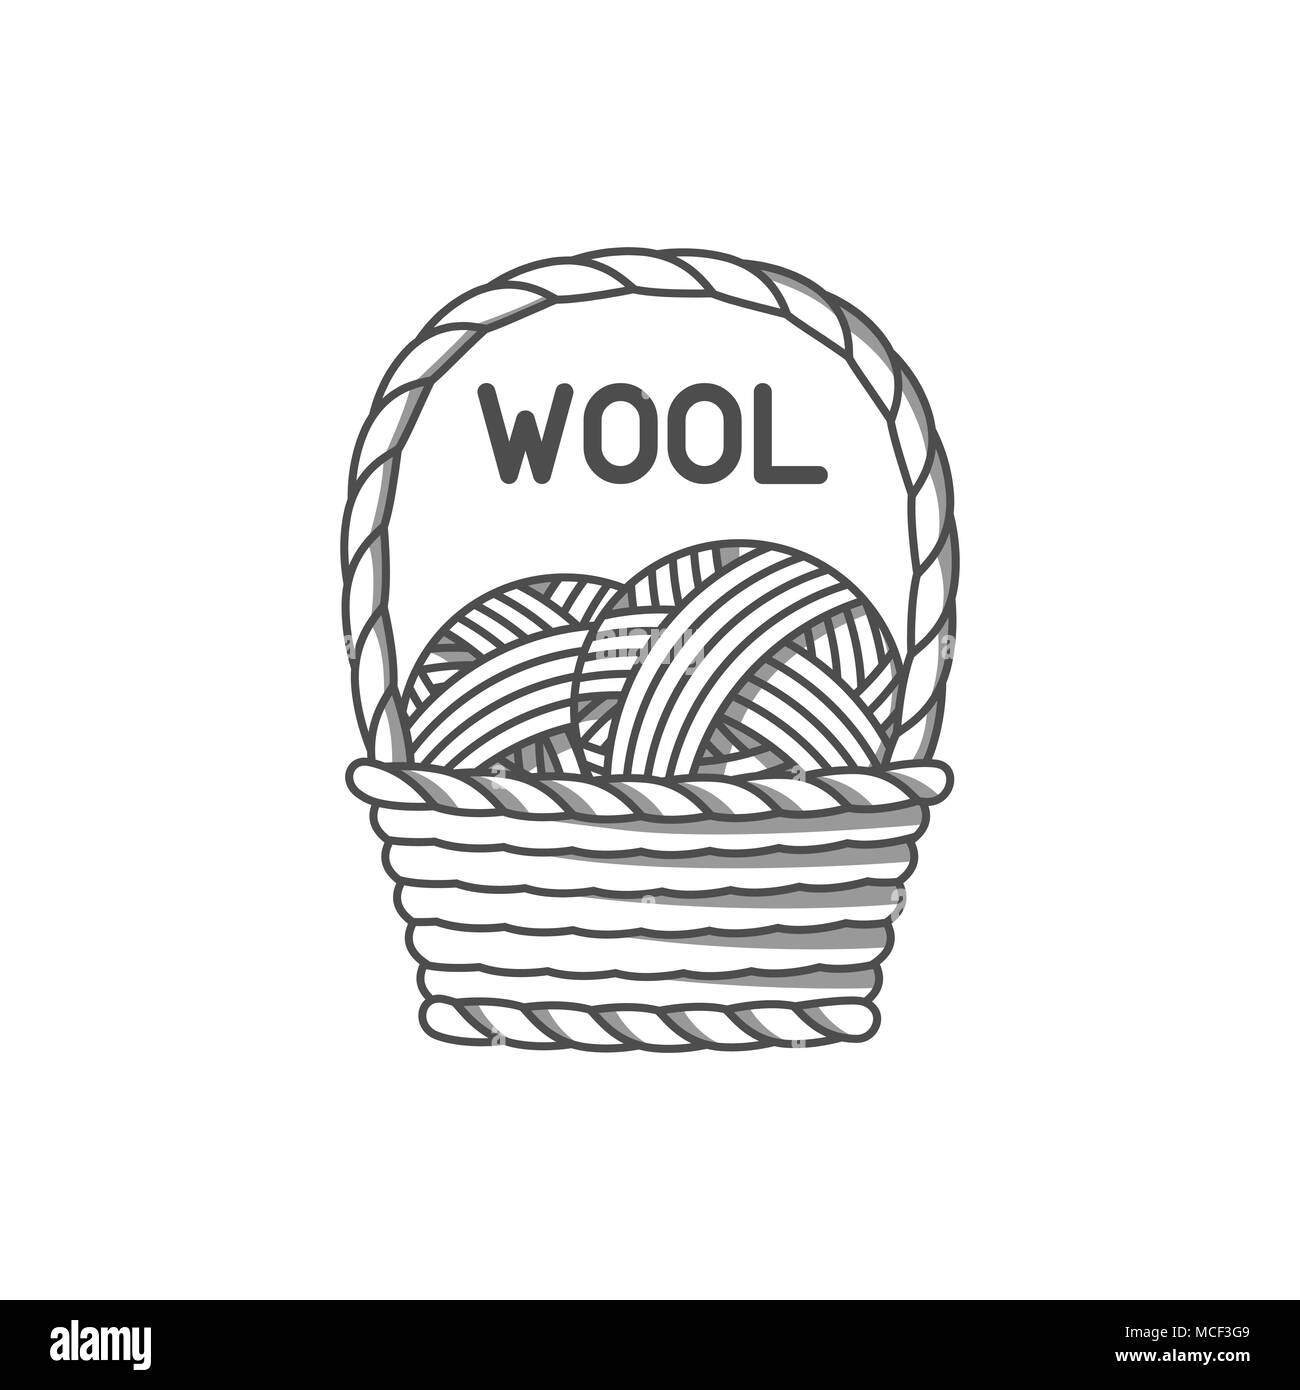 Wool emblem with merino sheep. Label for hand made, knitting or tailor shop - Stock Vector